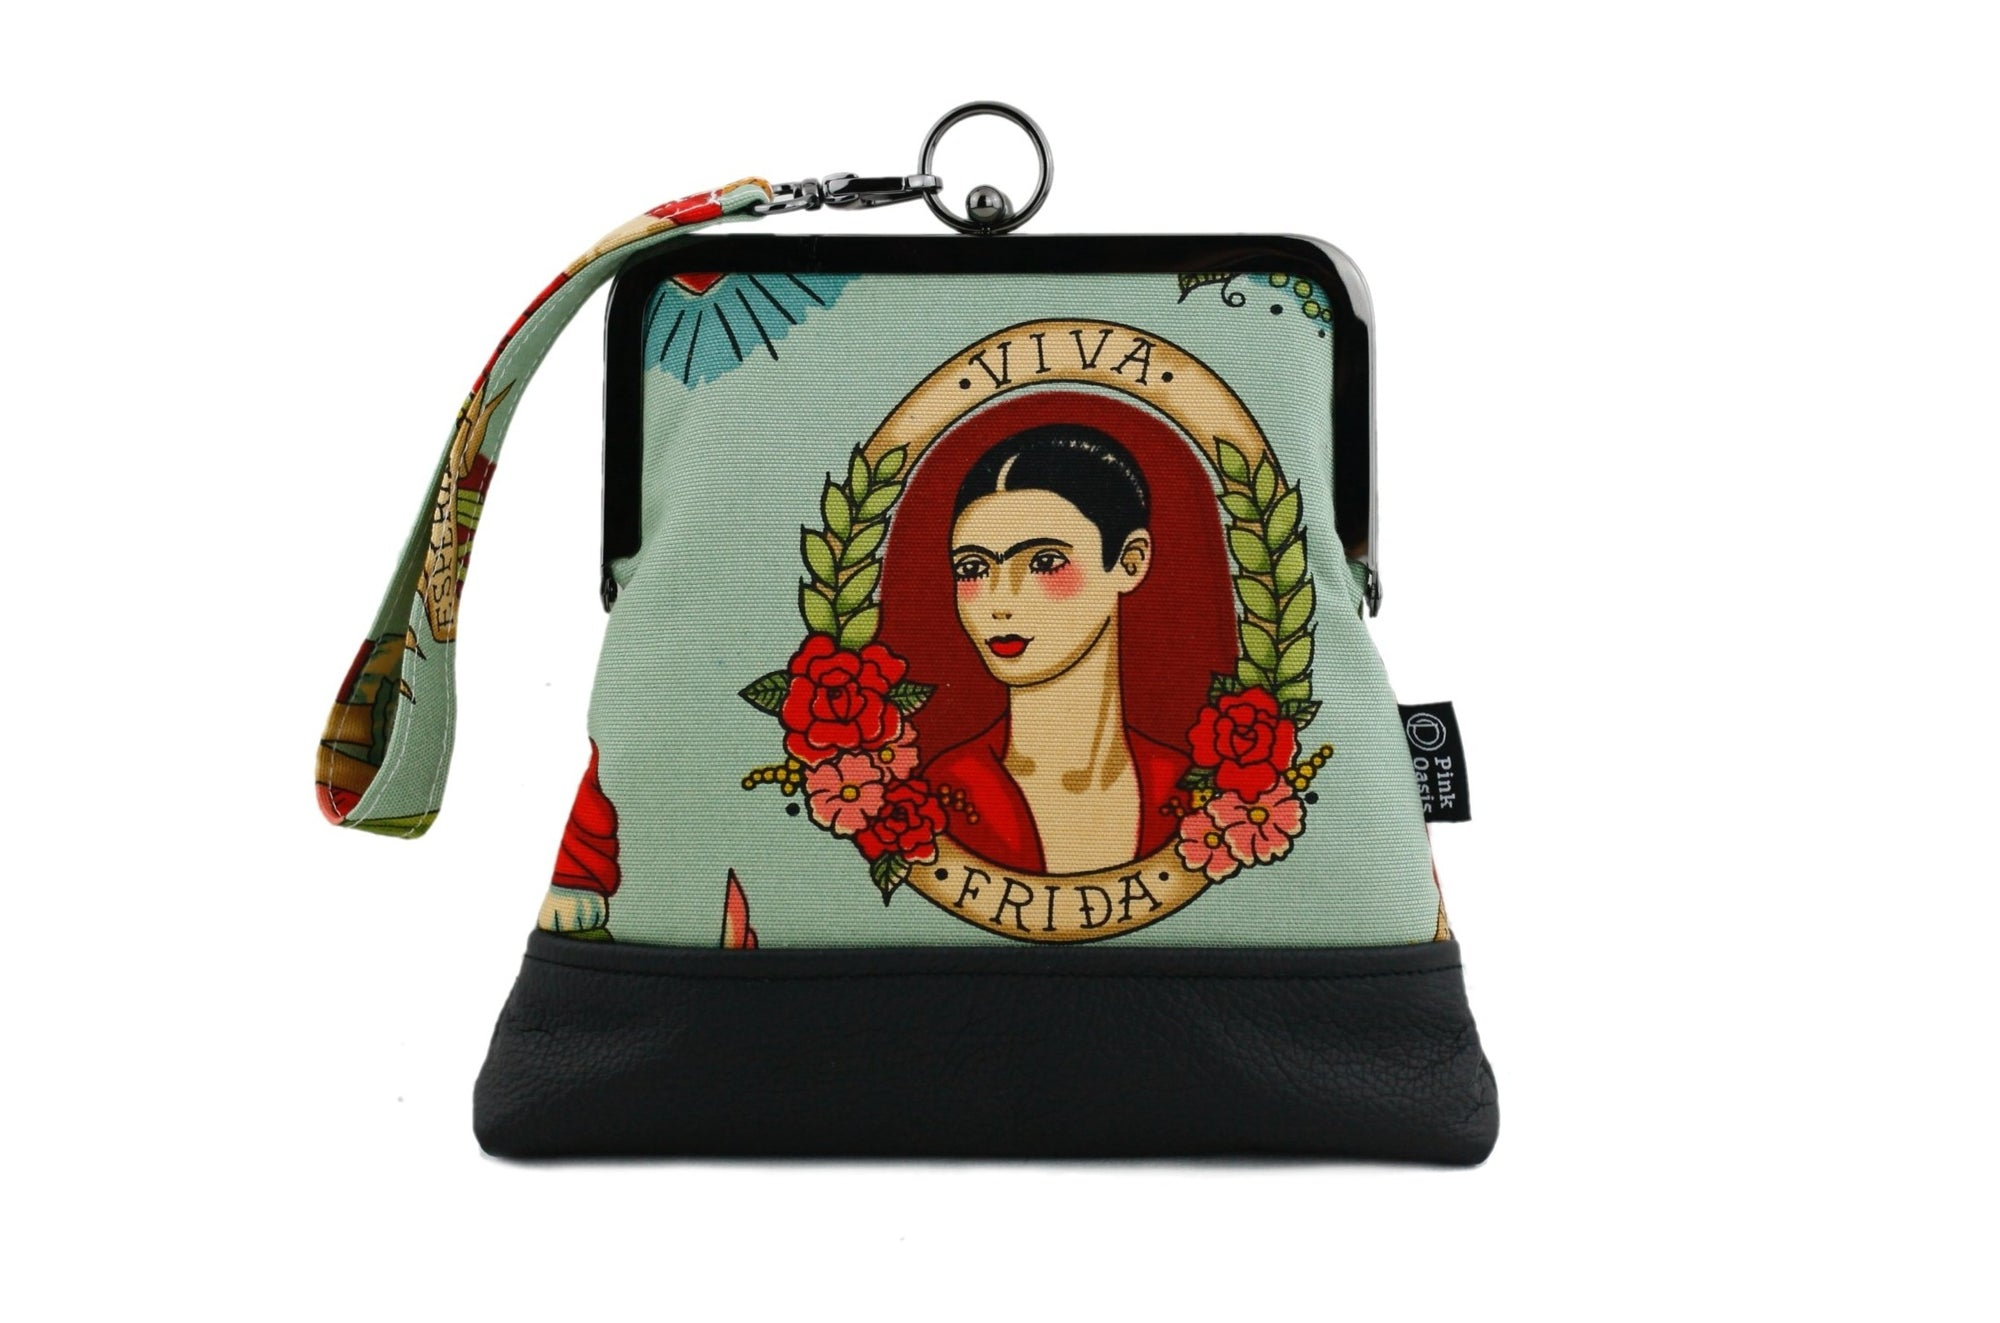 Frida Kahlo Wristlet Bag with Chain Strap | PINKOASIS